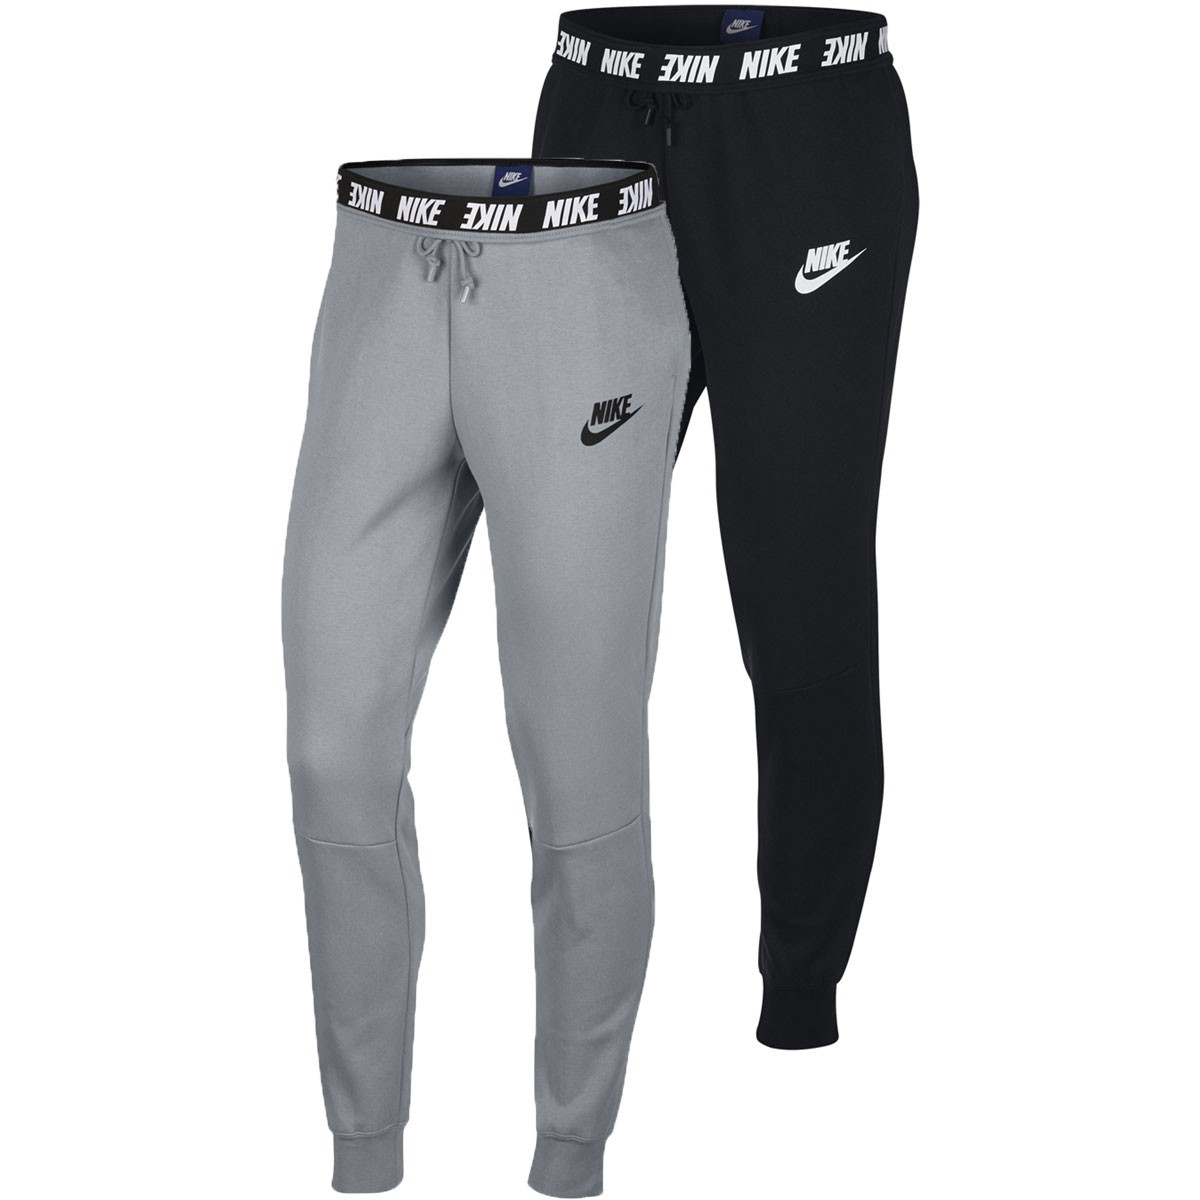 uk availability 1c924 a4564 PANTALON NIKE FEMME SPORTSWEAR ADVANCE 15 +